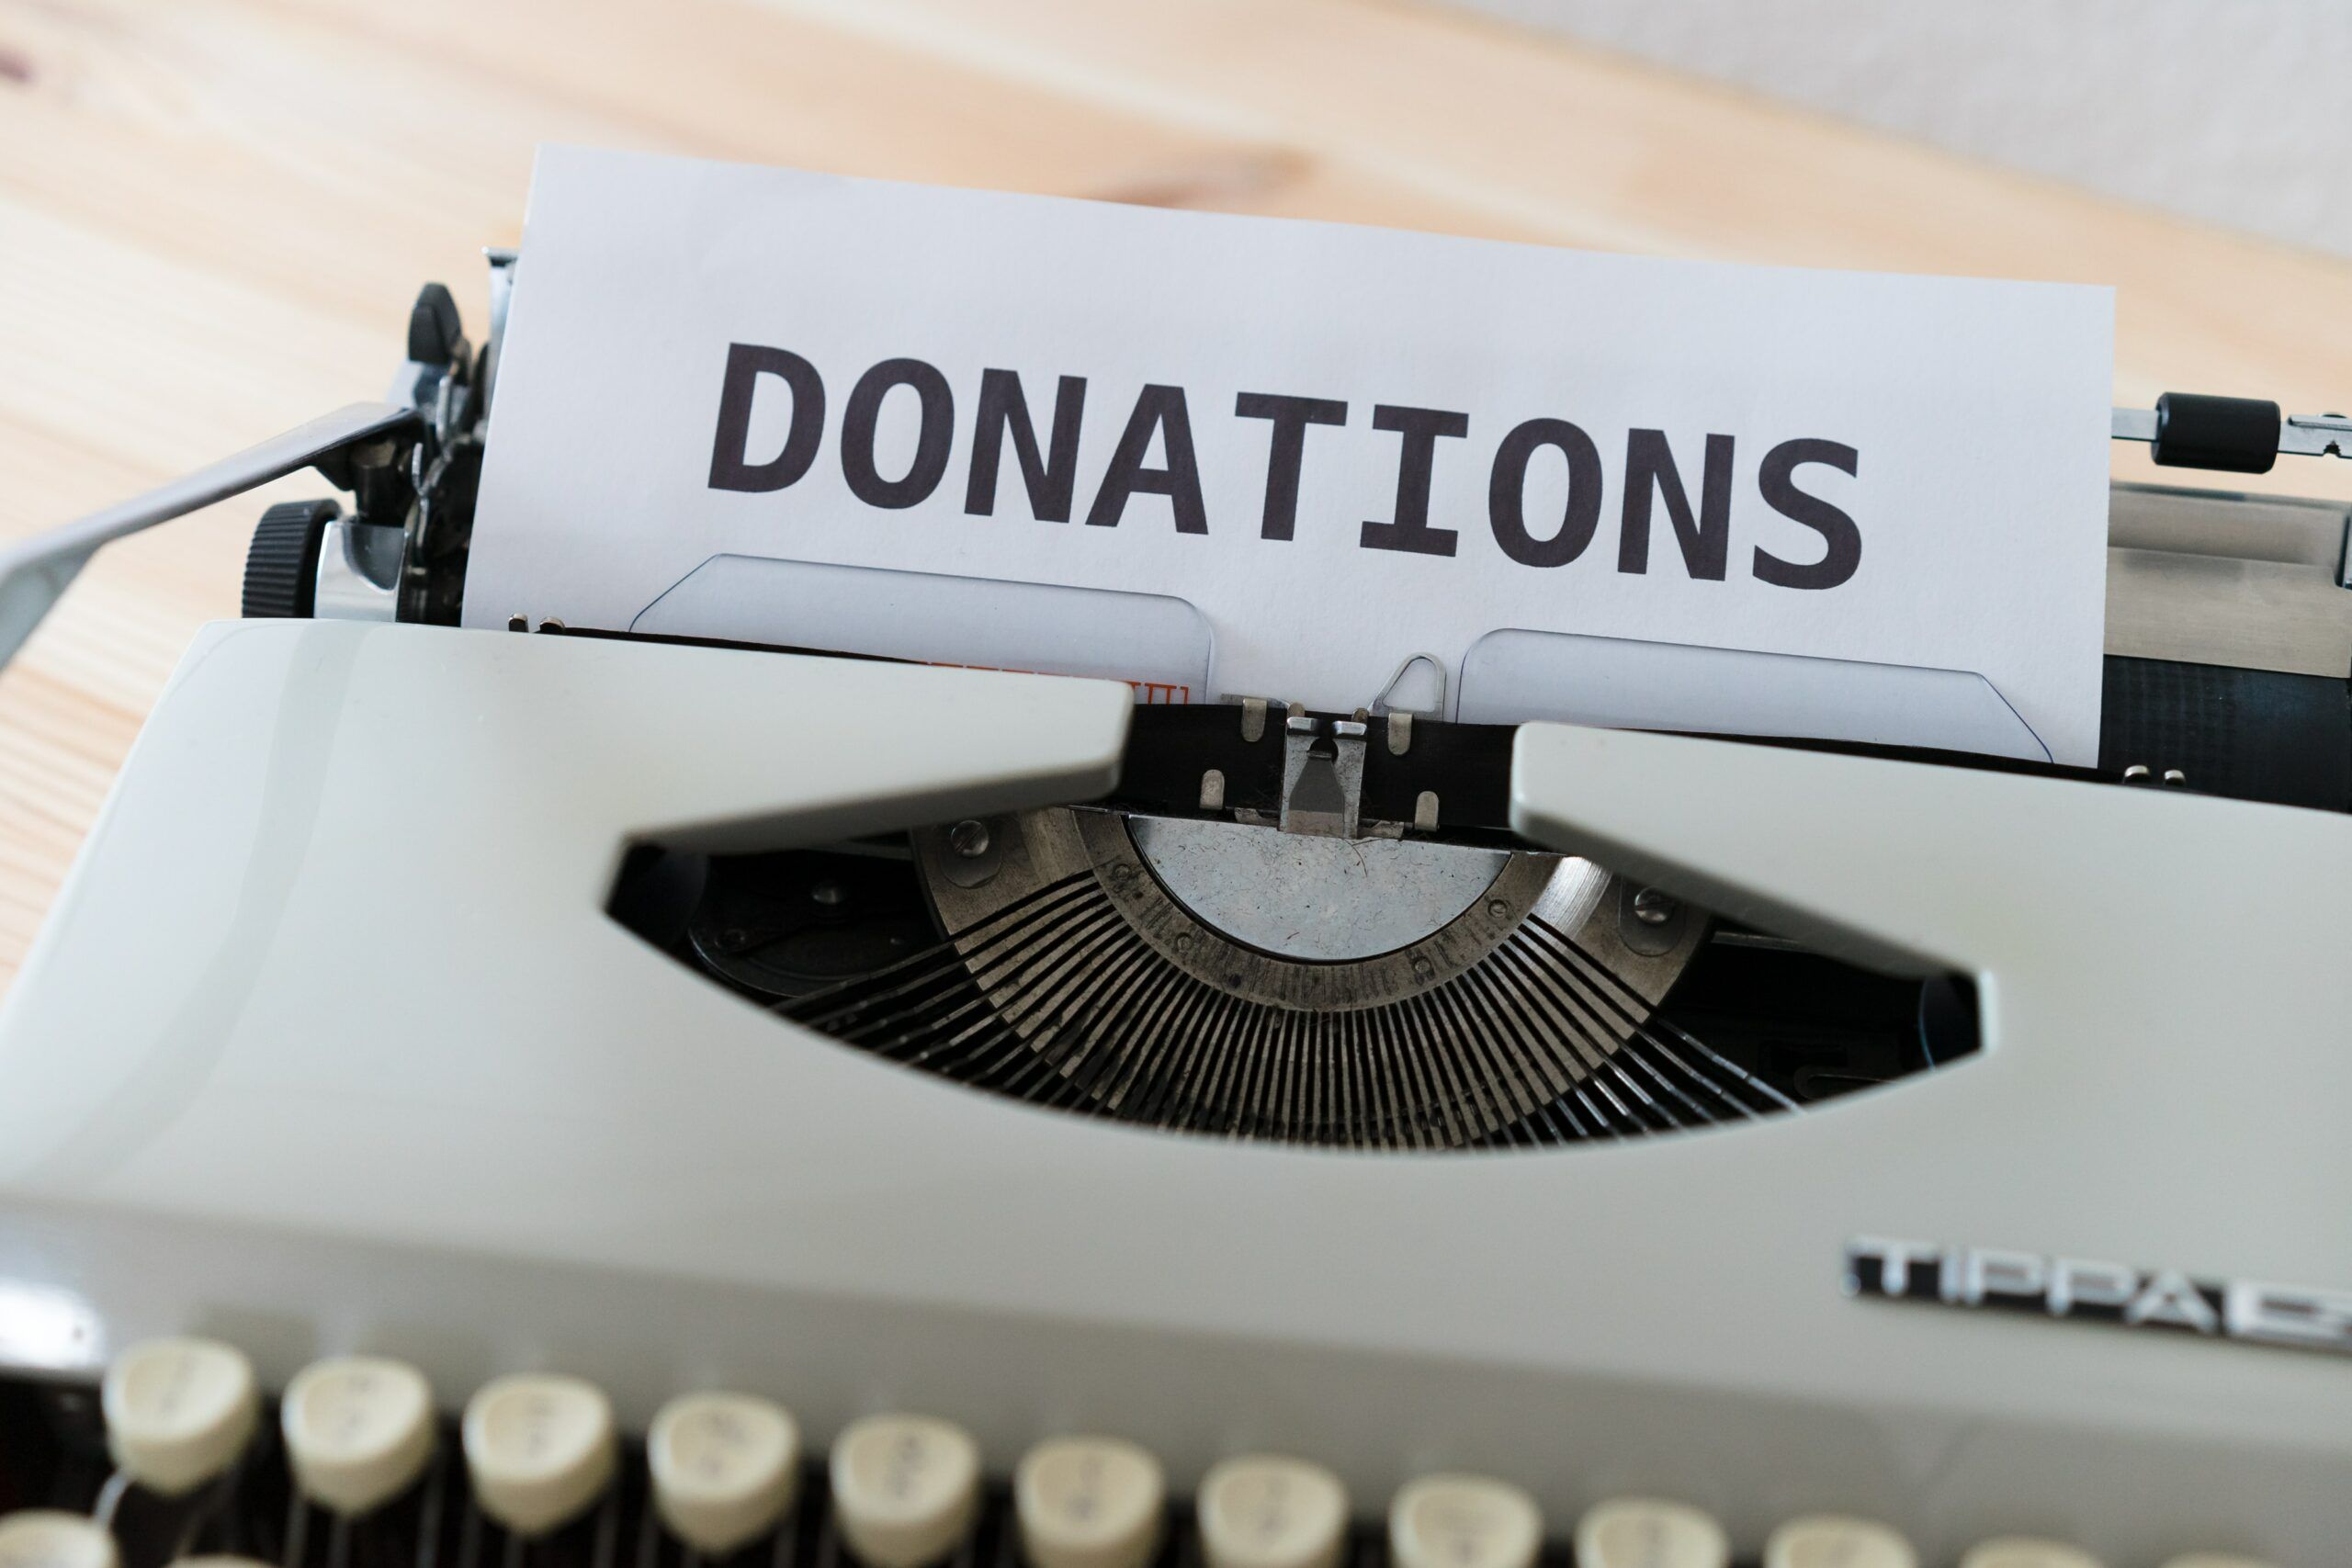 donations-type-writter